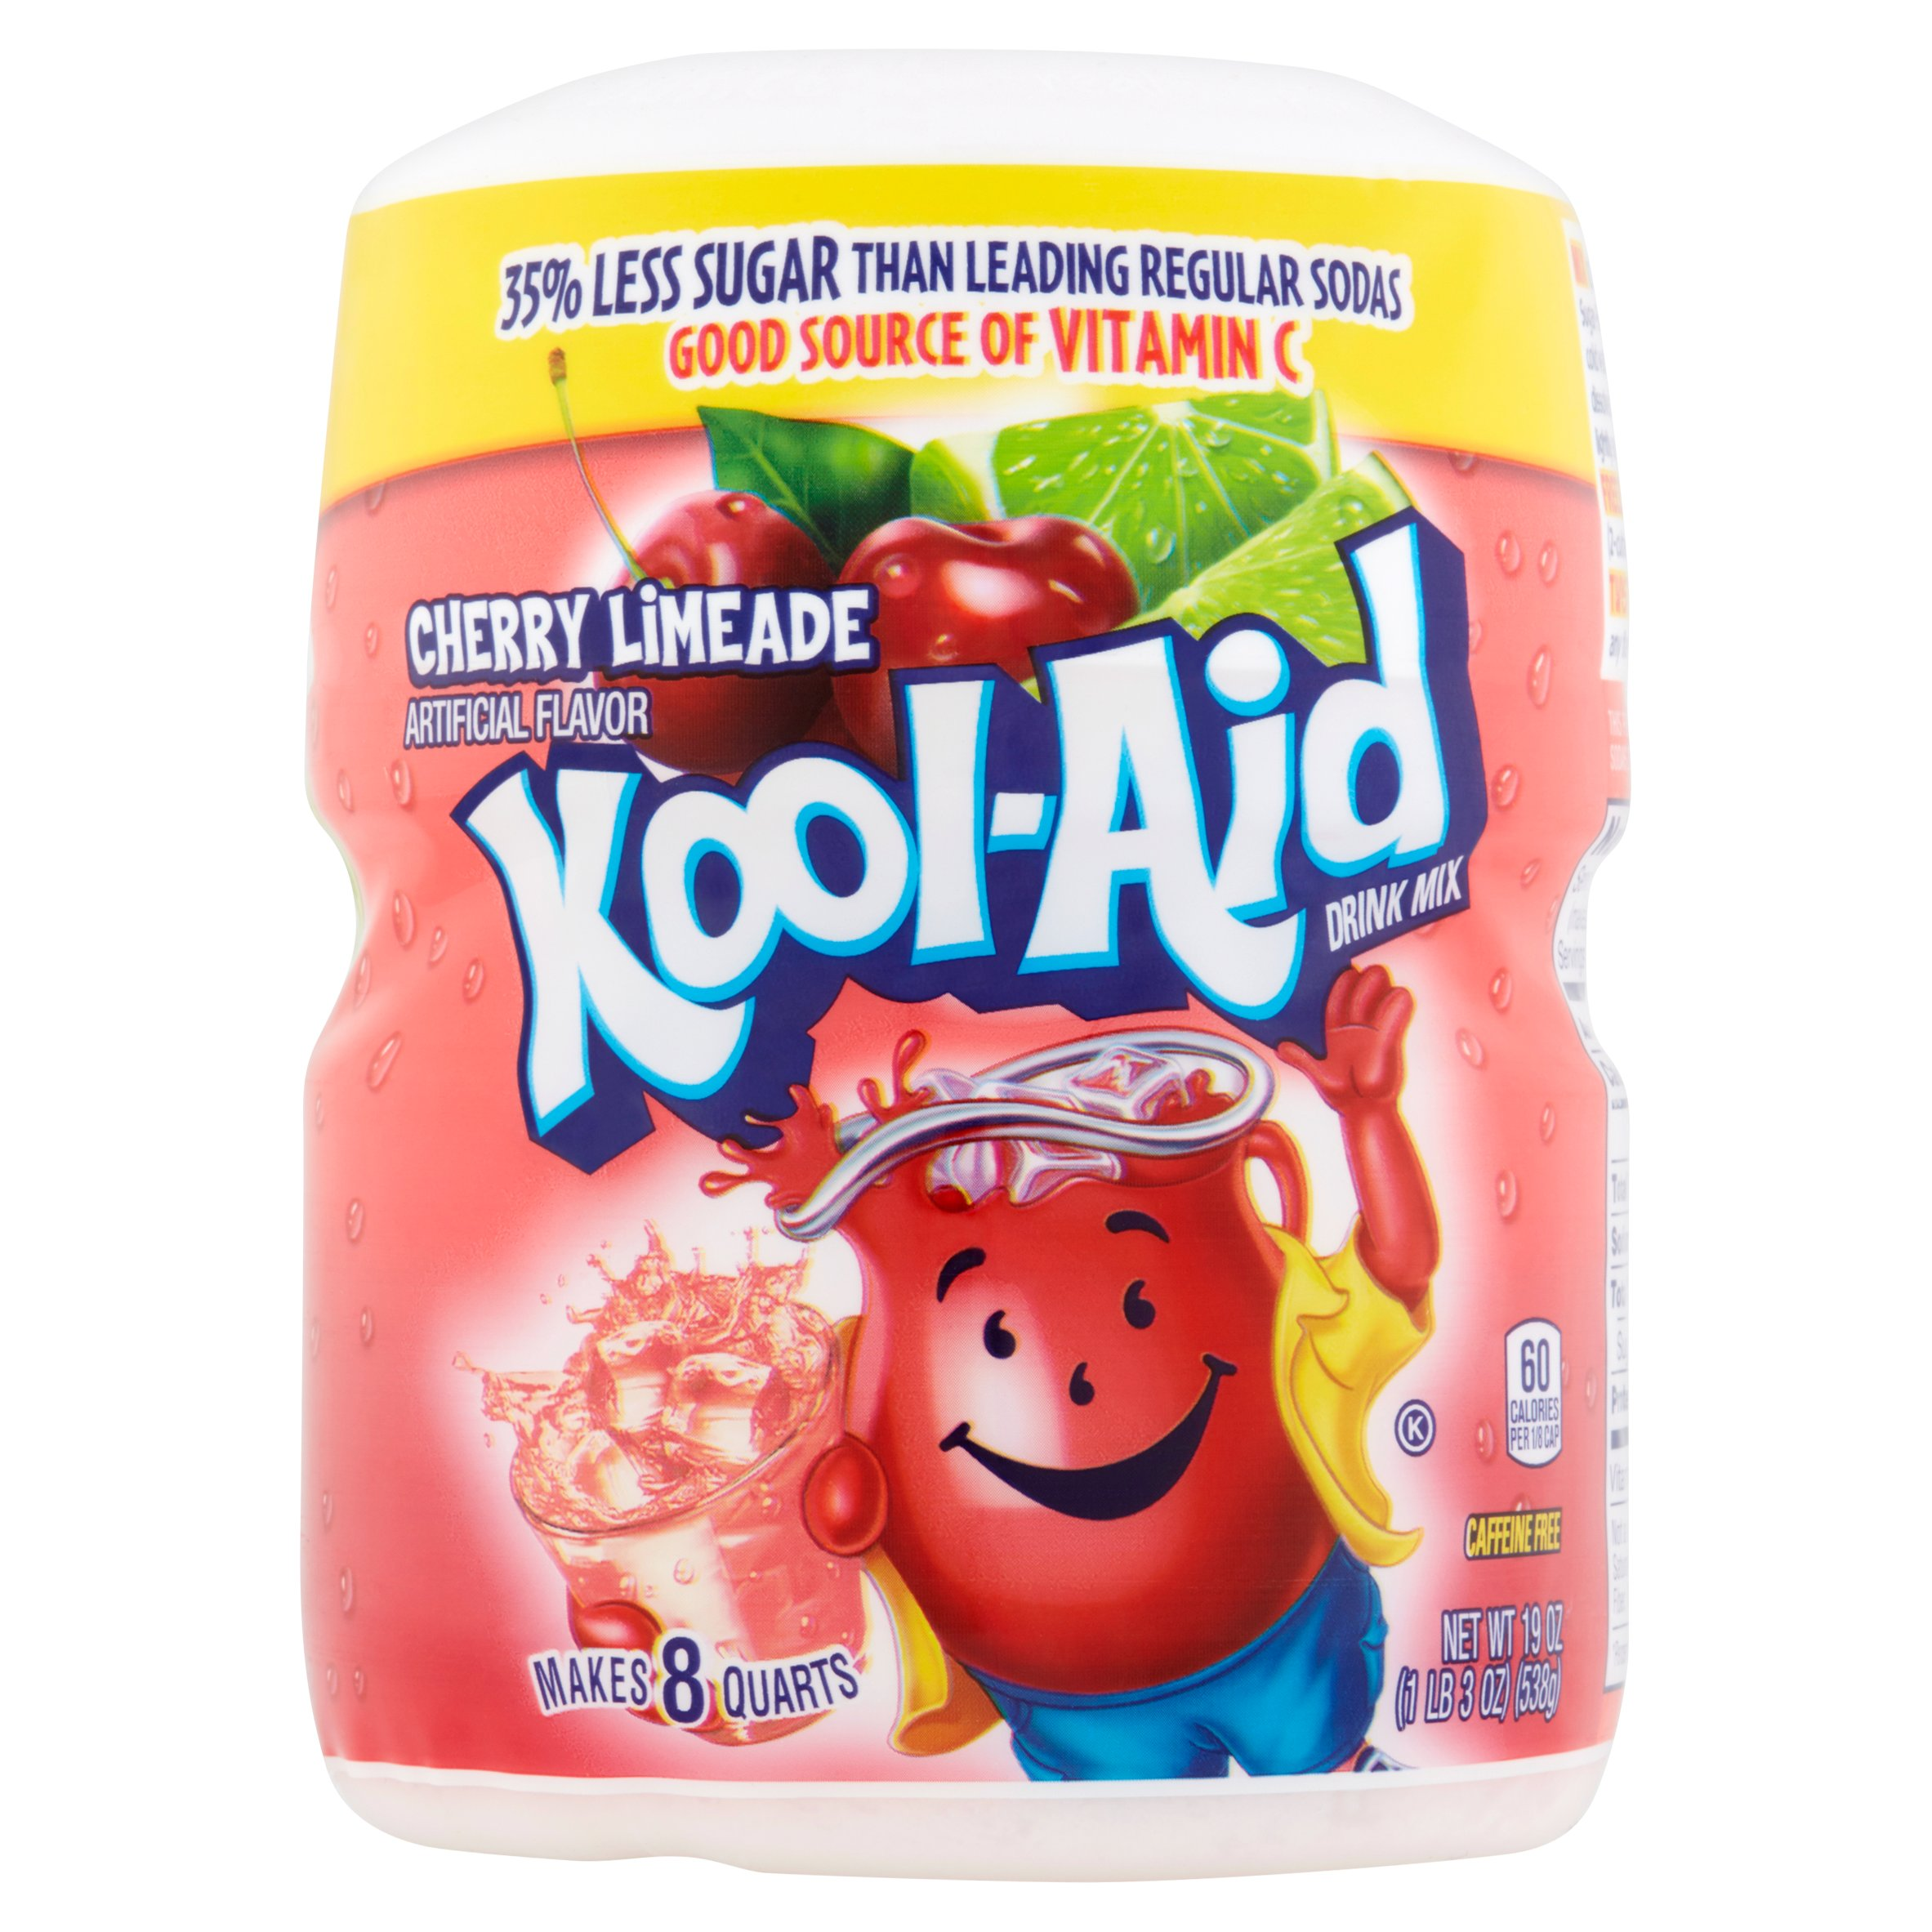 Kool-Aid Cherry Limeade Soft Drink Mix, 19 oz